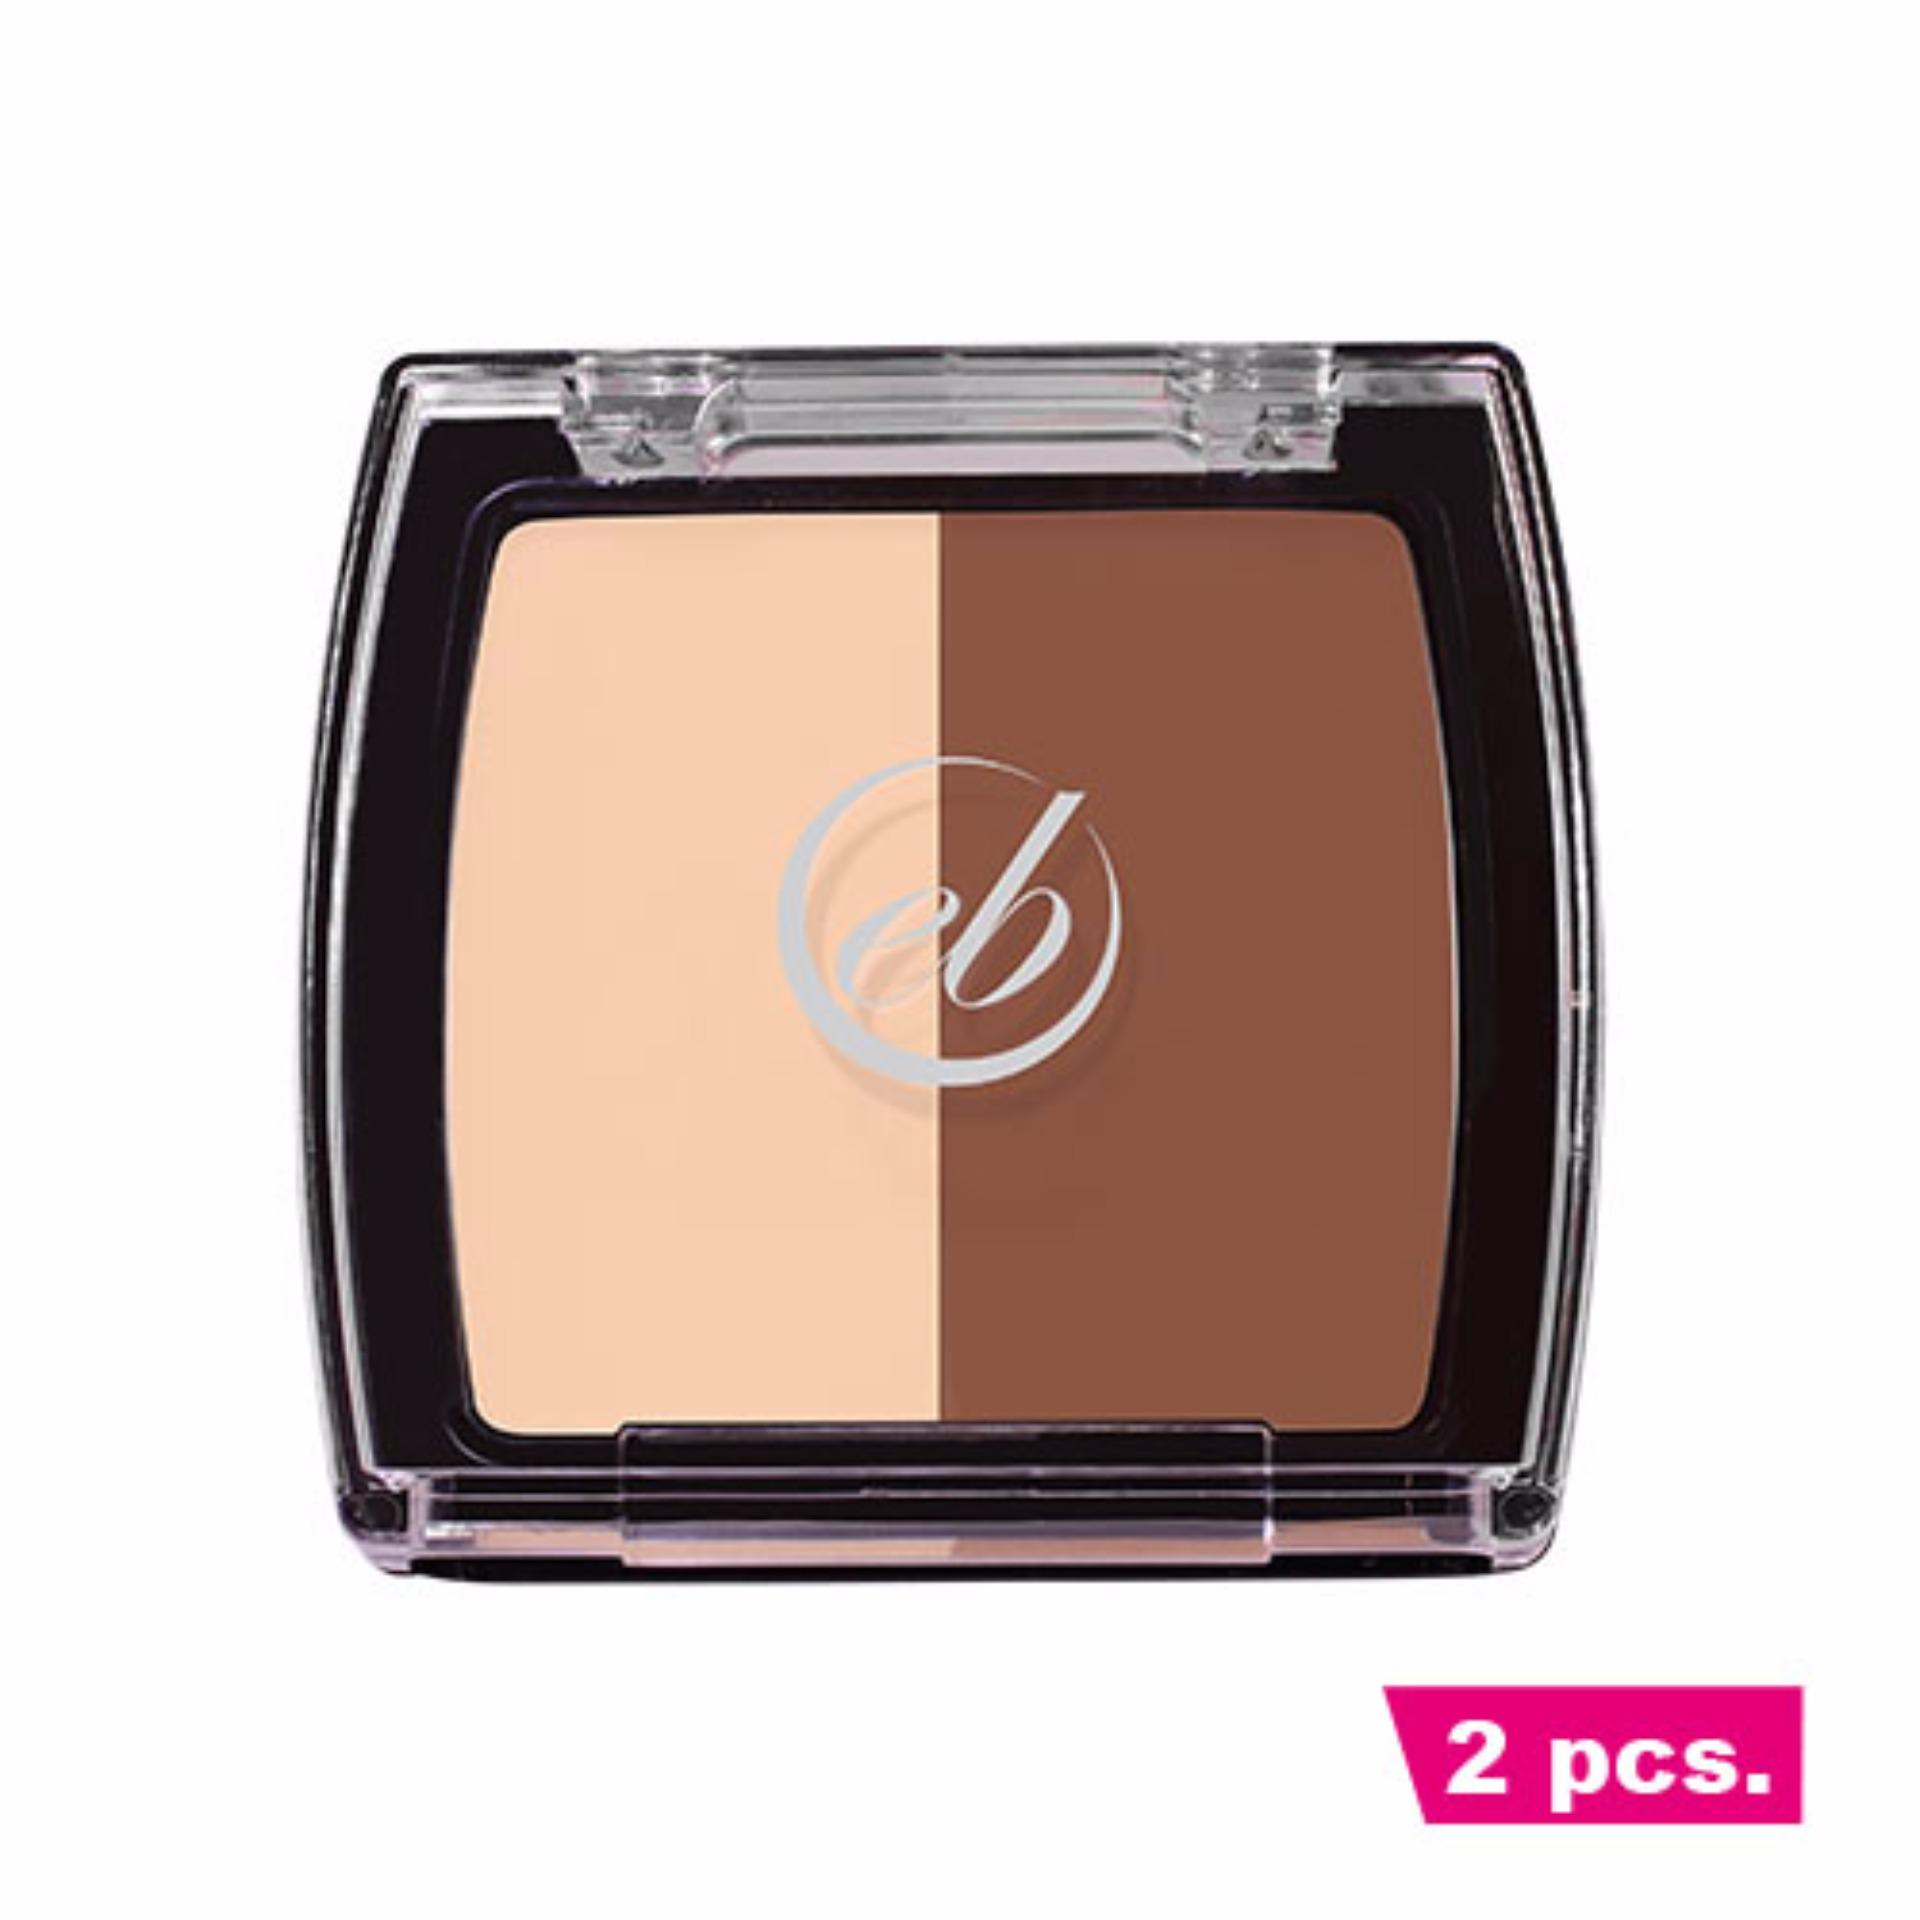 2 pcs. Ever Bilena Contour Duo - Deep Philippines